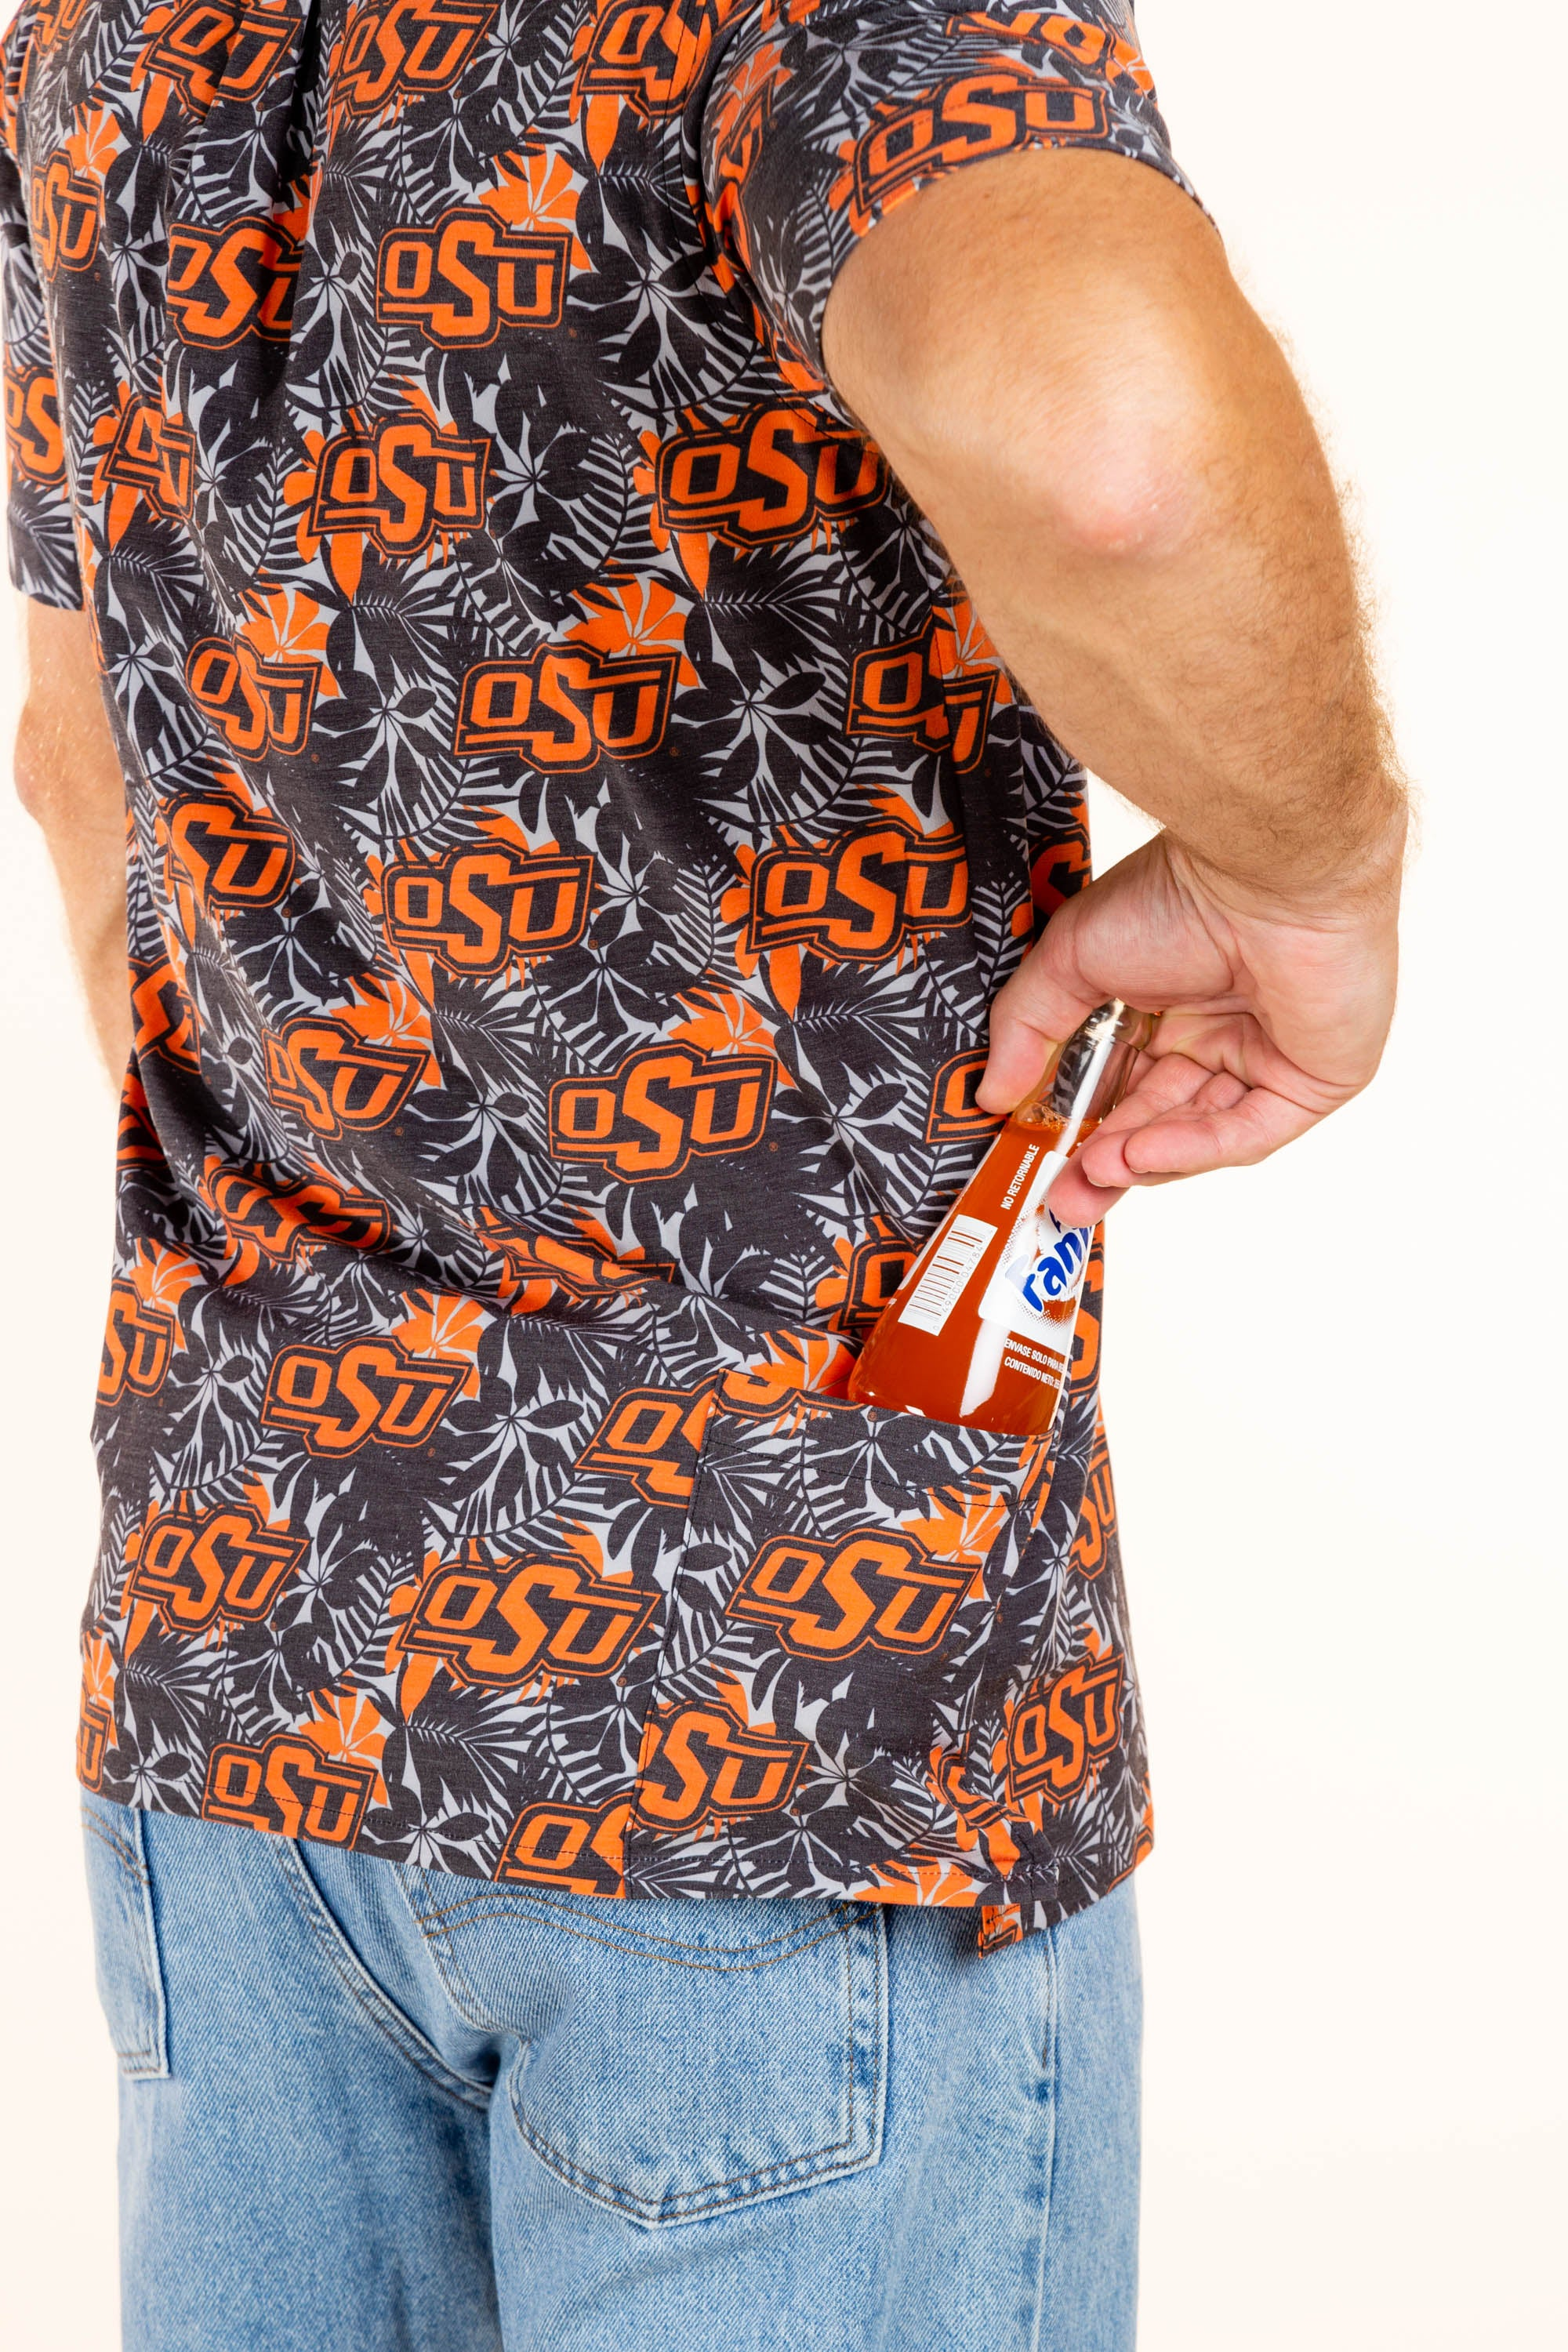 Oklahoma State button up shirt with extra pocket